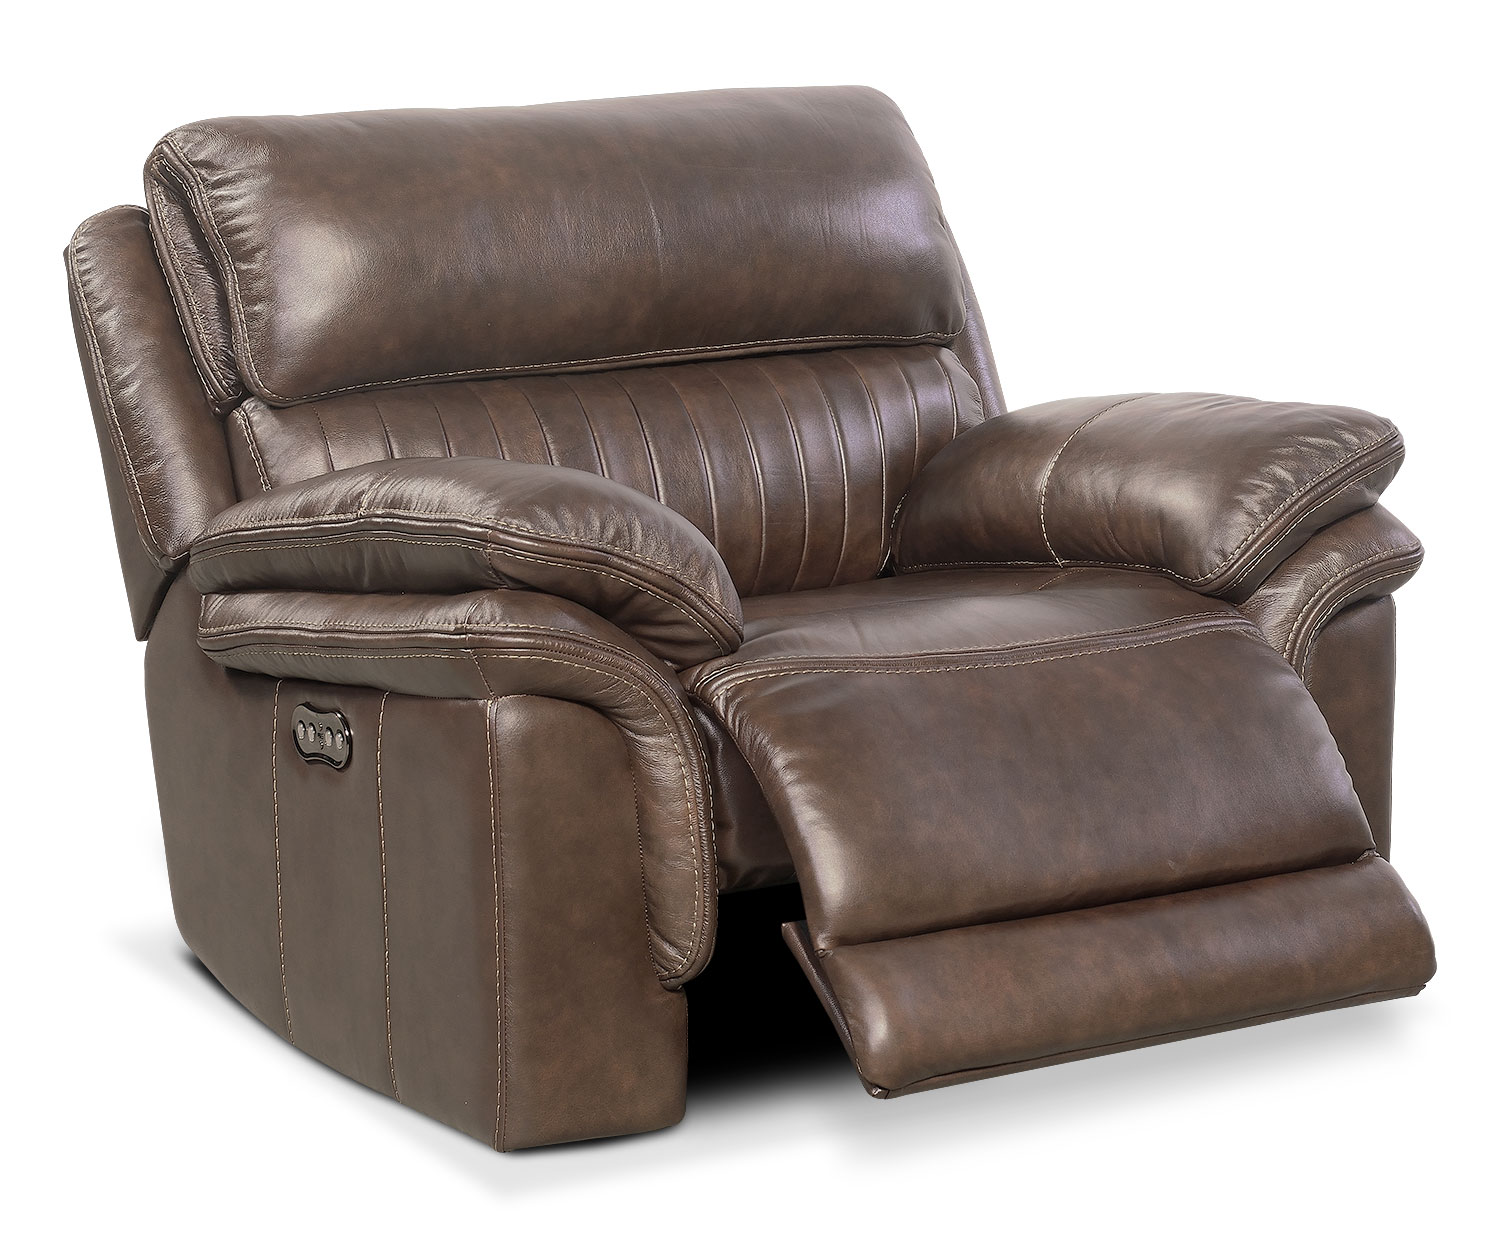 Monterey Power Recliner - Brown by One80  sc 1 st  Value City Furniture & Monterey Power Recliner - Brown | Value City Furniture islam-shia.org